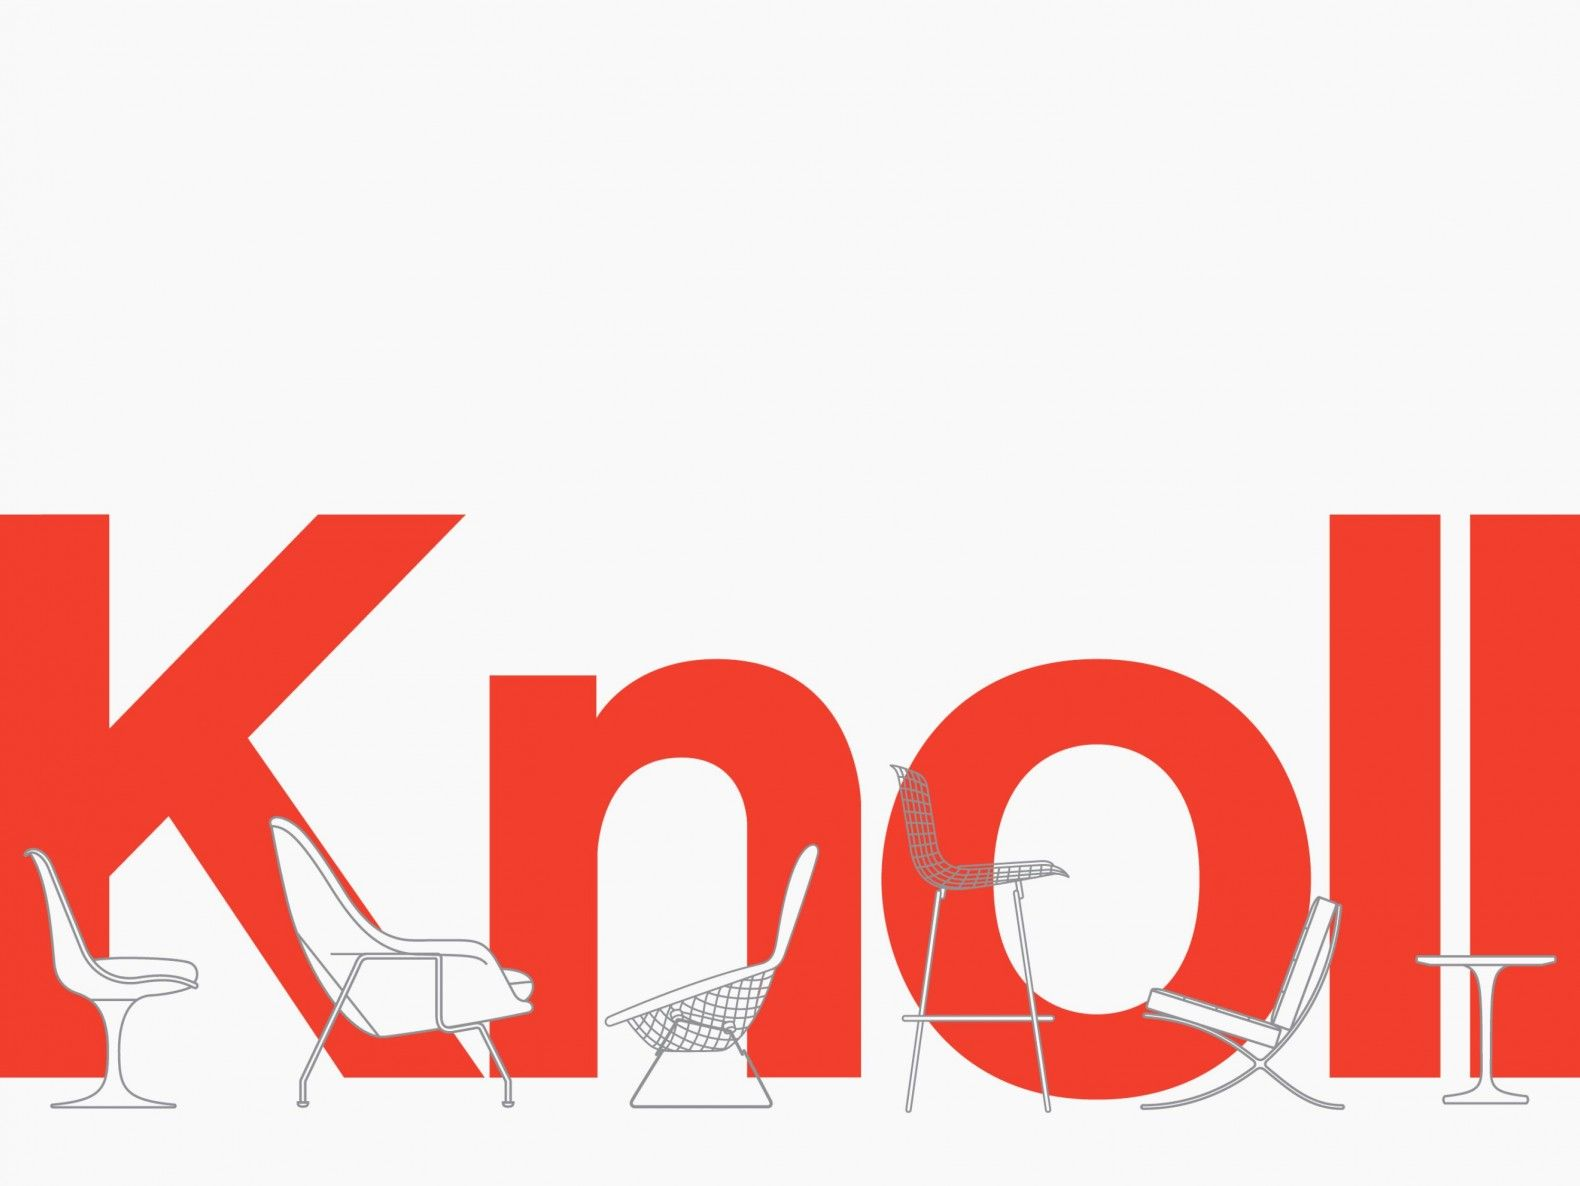 Planning Unit — Knoll Lettering, Knoll, Stream of